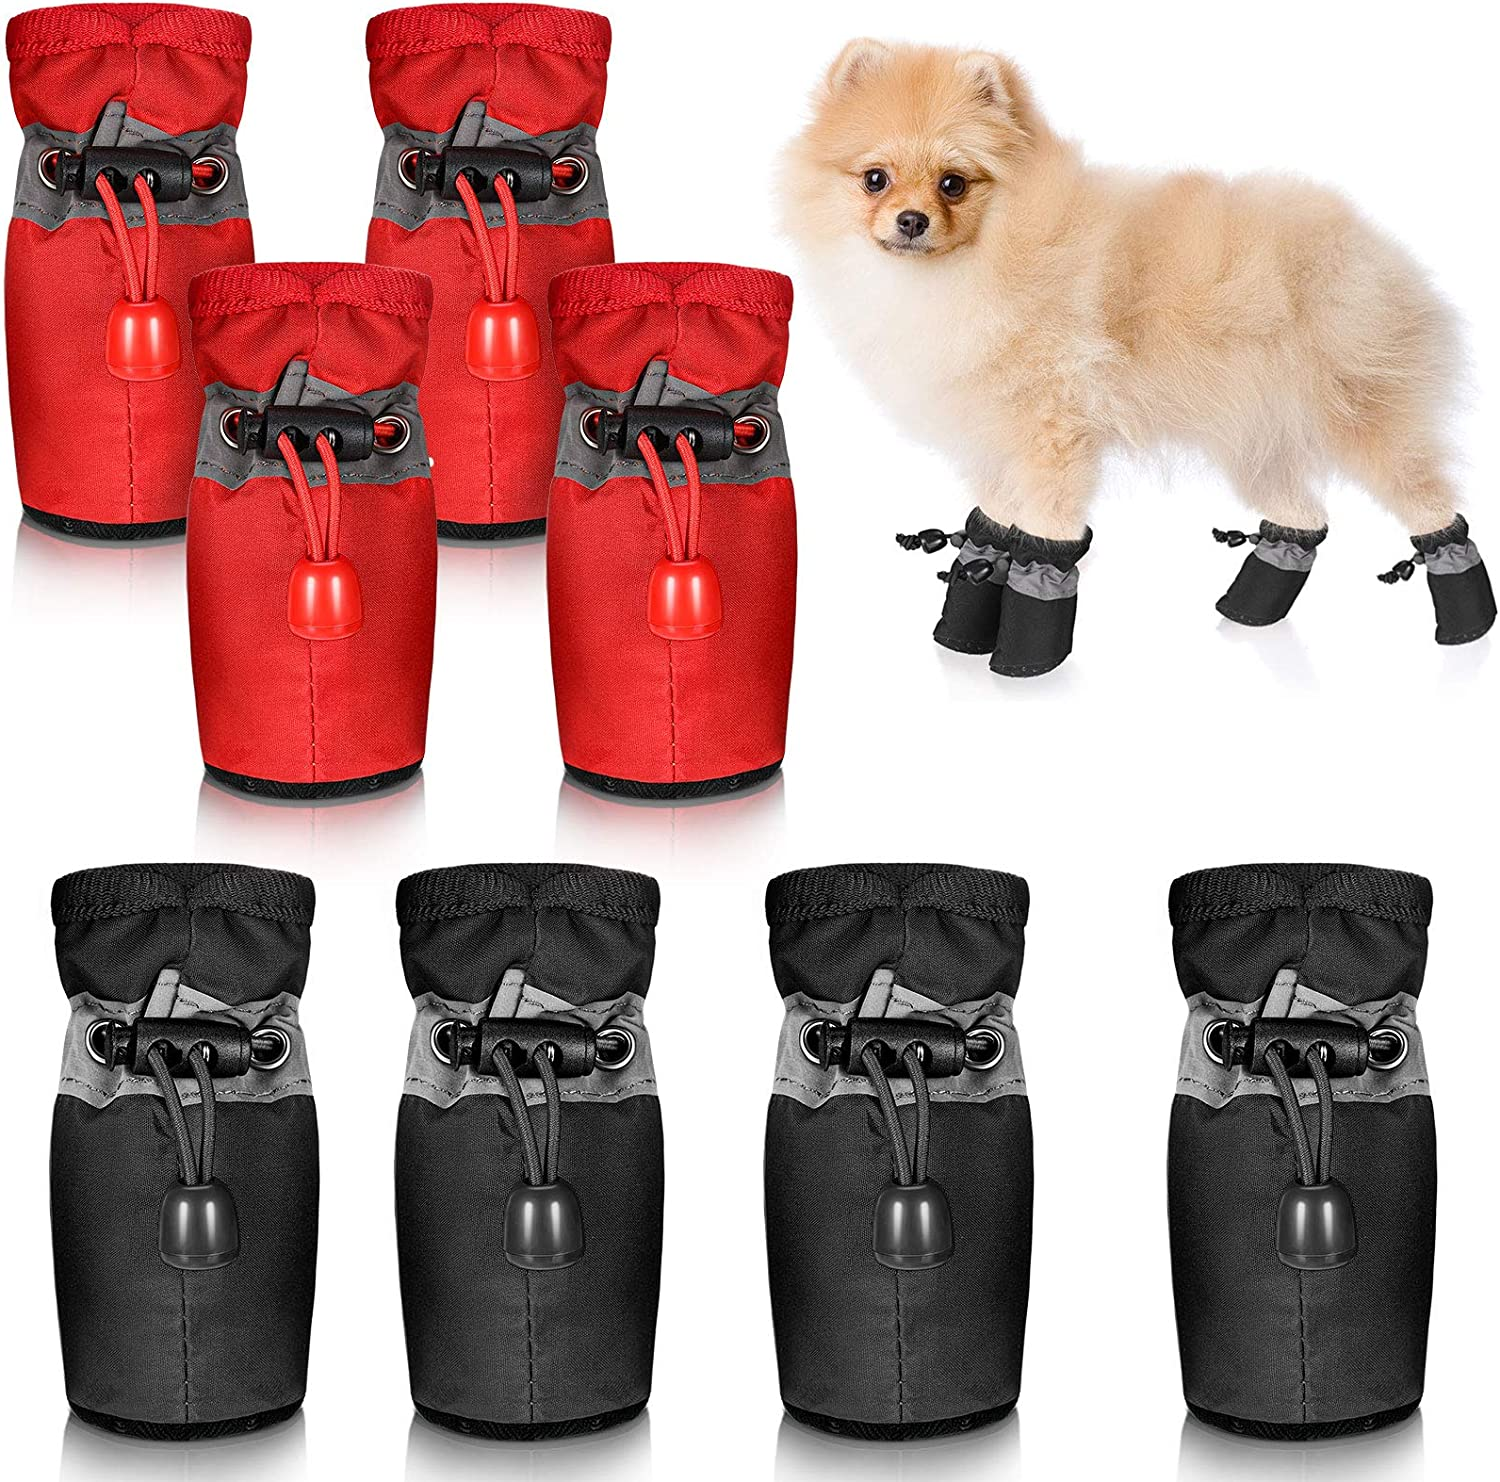 1,Black 4pcs Waterproof Dog Shoes Rain Snow,Soft Soled Booties for Dogs with Adjustable Drawstring for Small Puppy